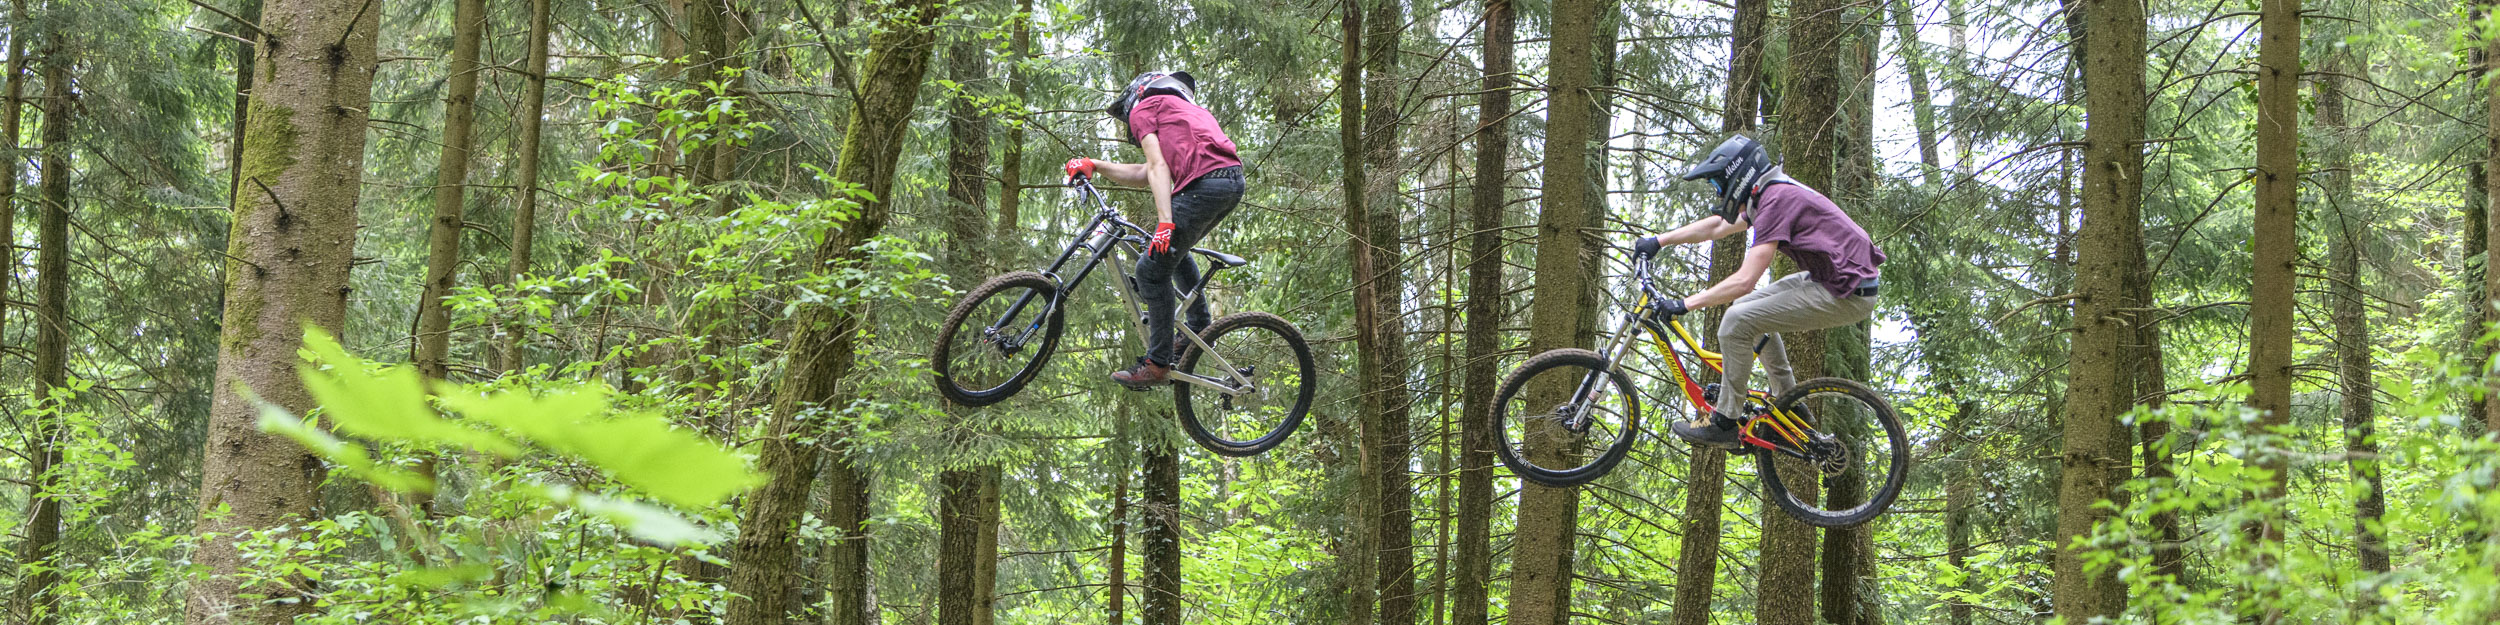 Jump-Session im Bike-Park